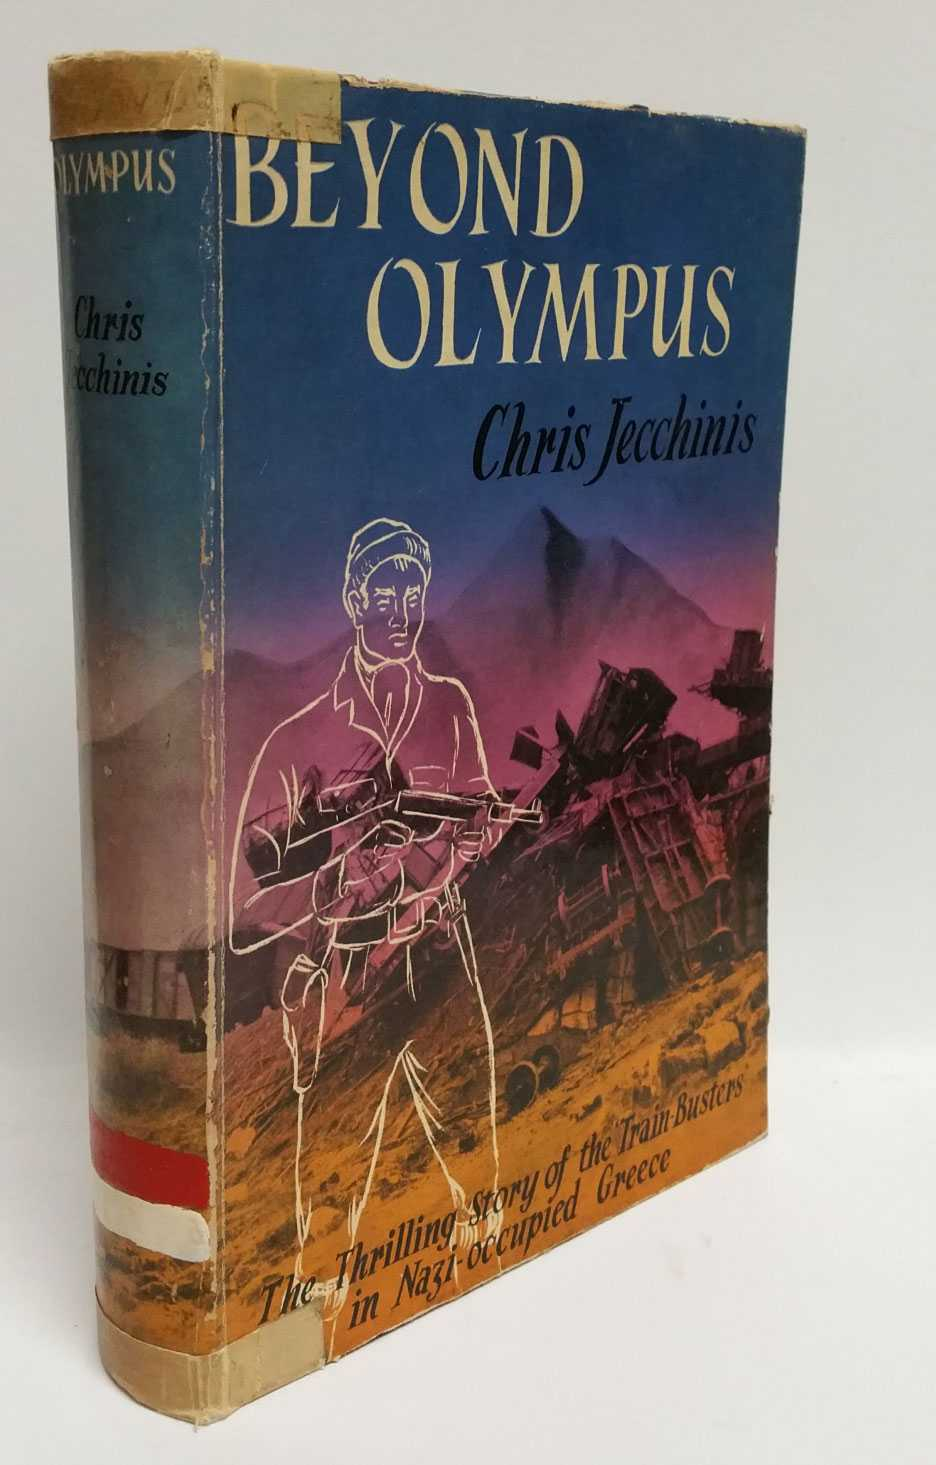 Beyond Olympus: The Thrilling Story of the Train-Busters in Nazi-occupied Greece, Chris Jecchinis